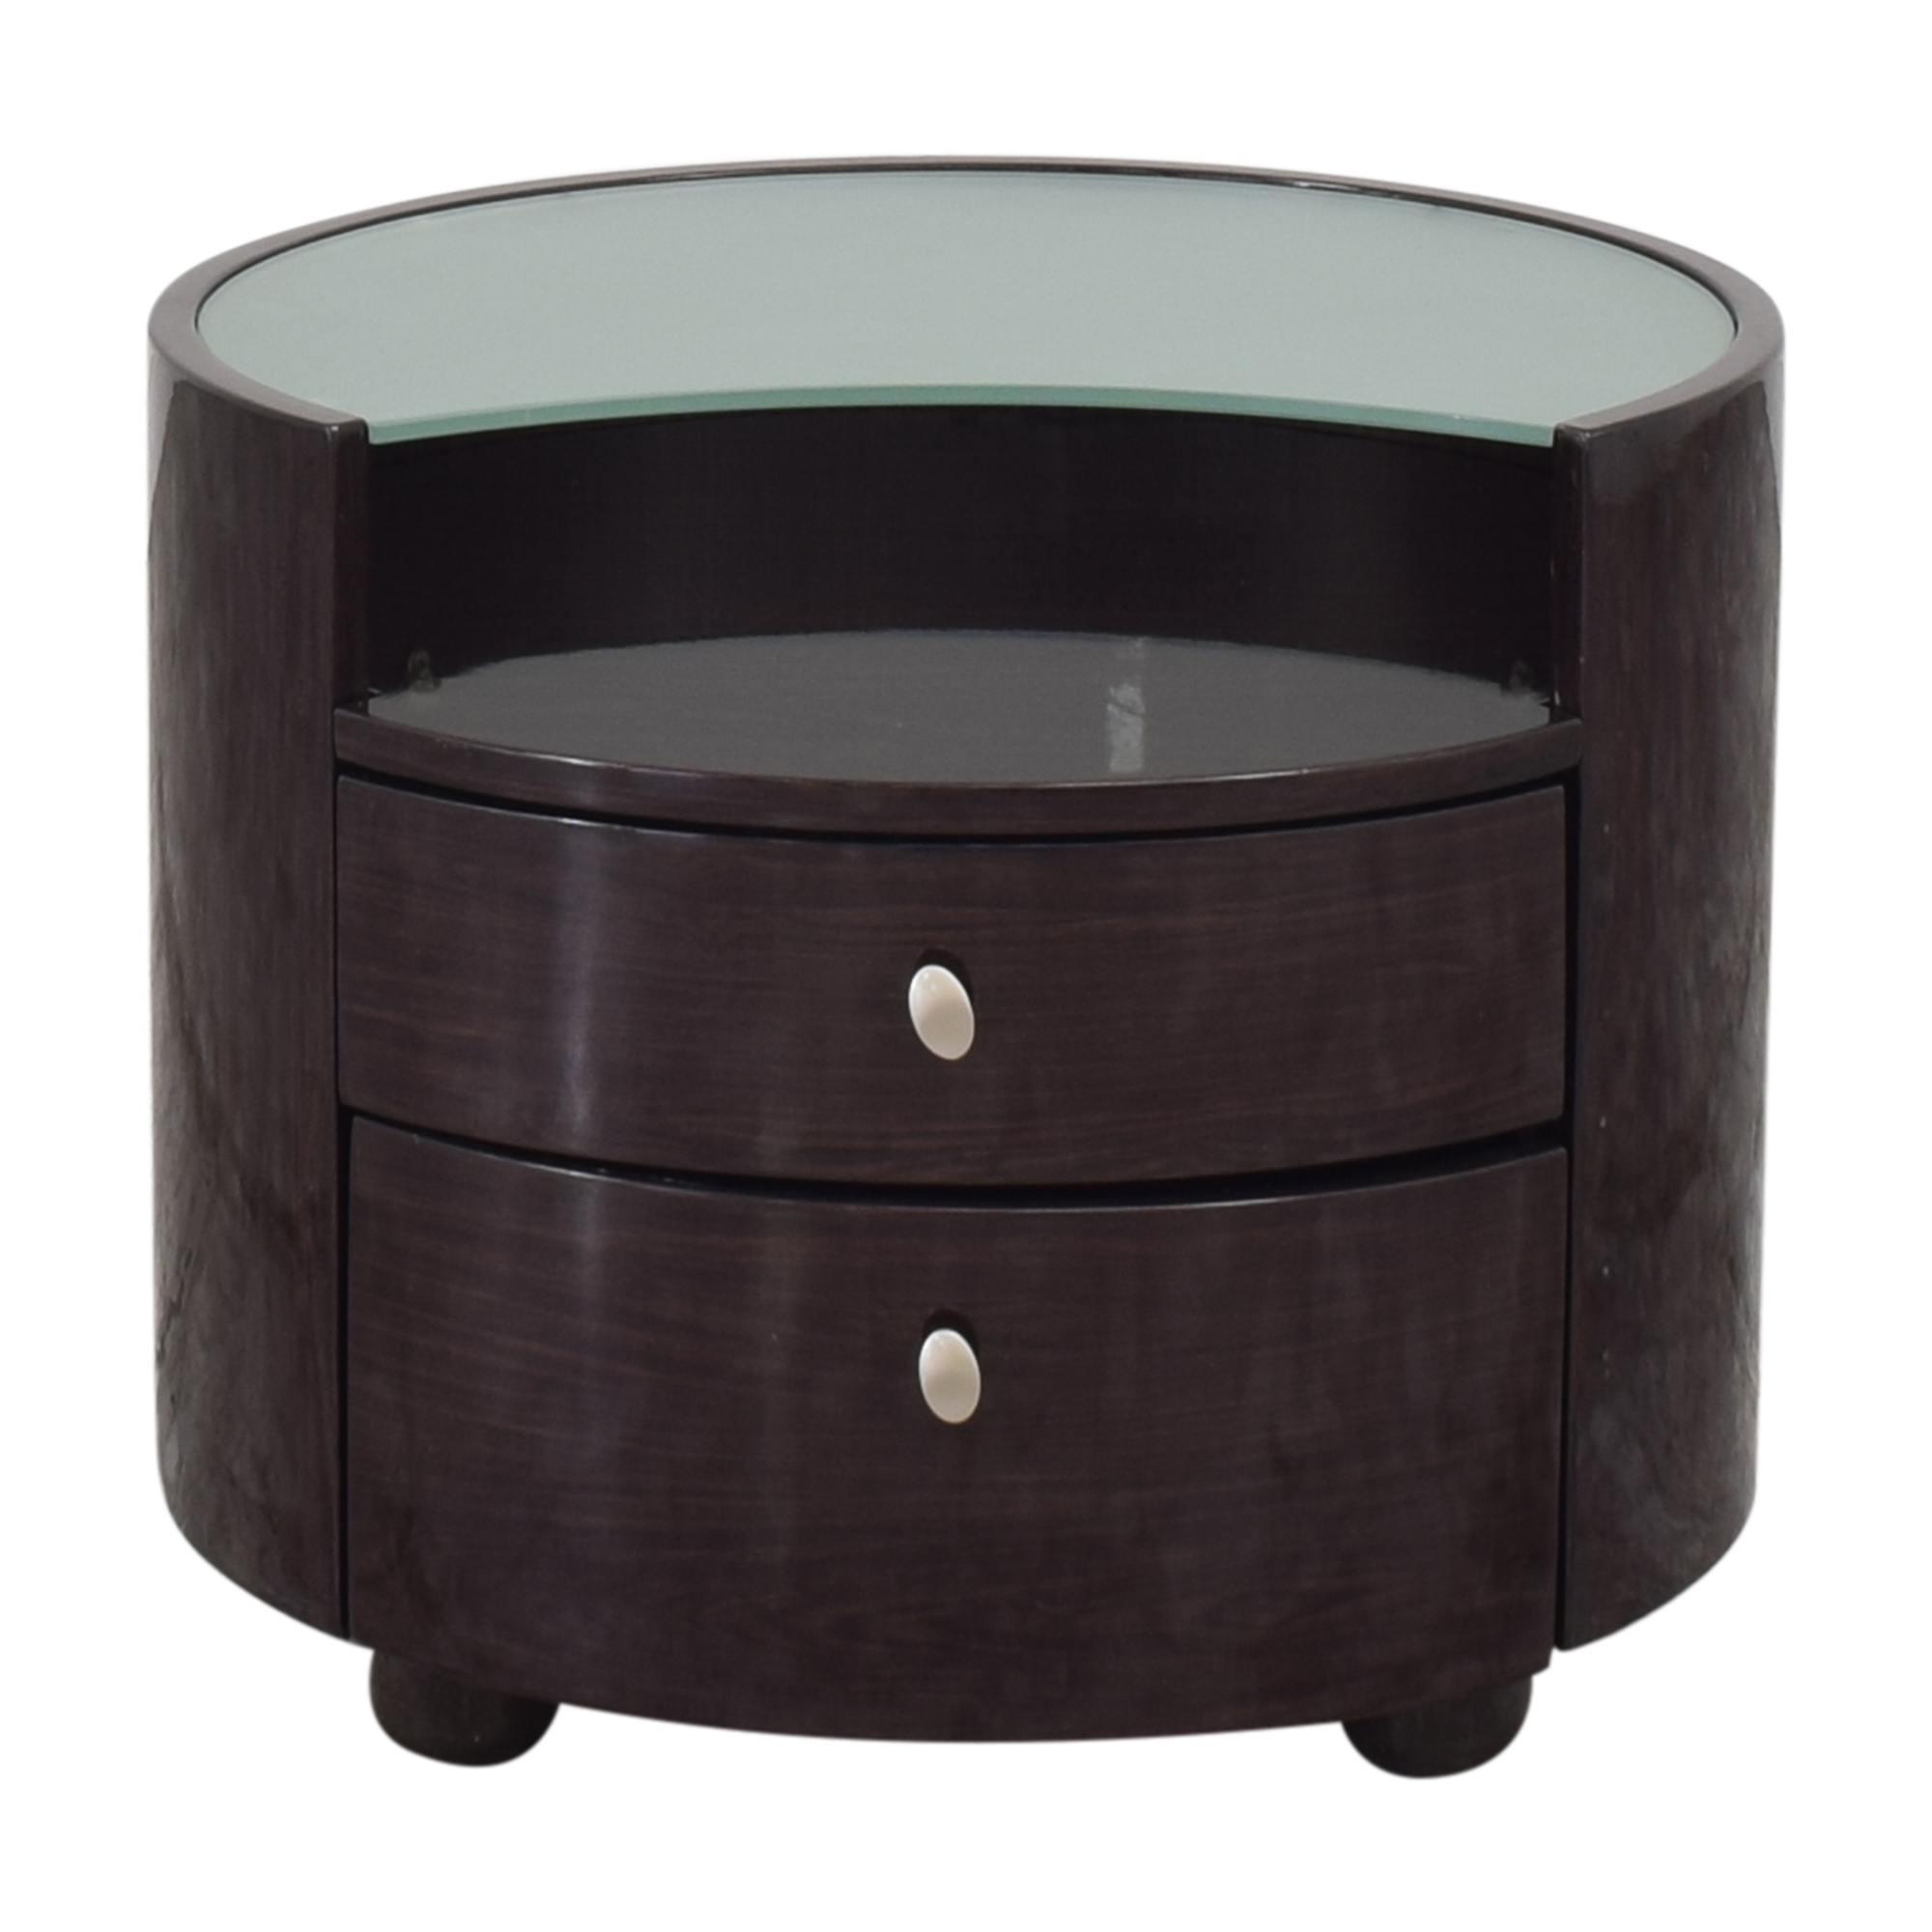 American Eagle Furniture Oval Nightstand / Tables